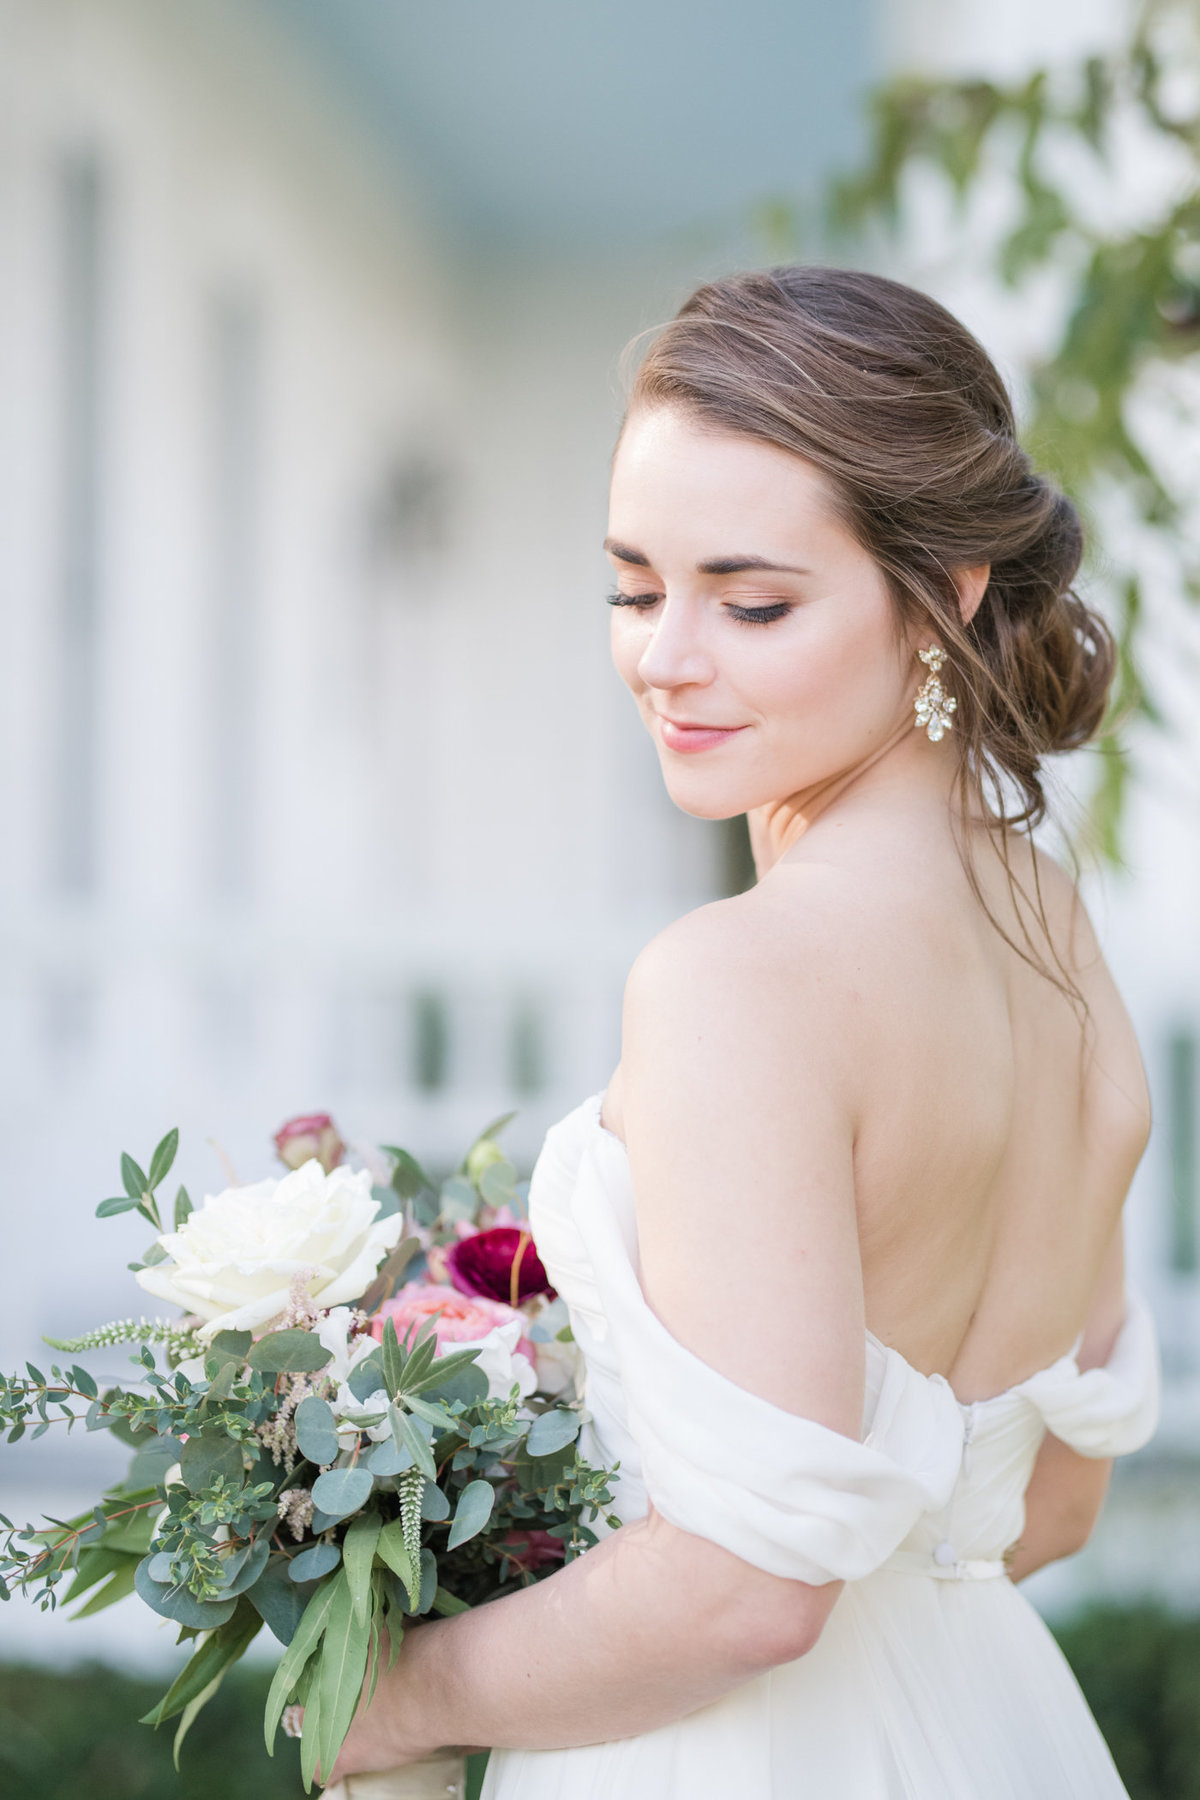 Bridal Portrait at Barr Mansion in Austin Texas